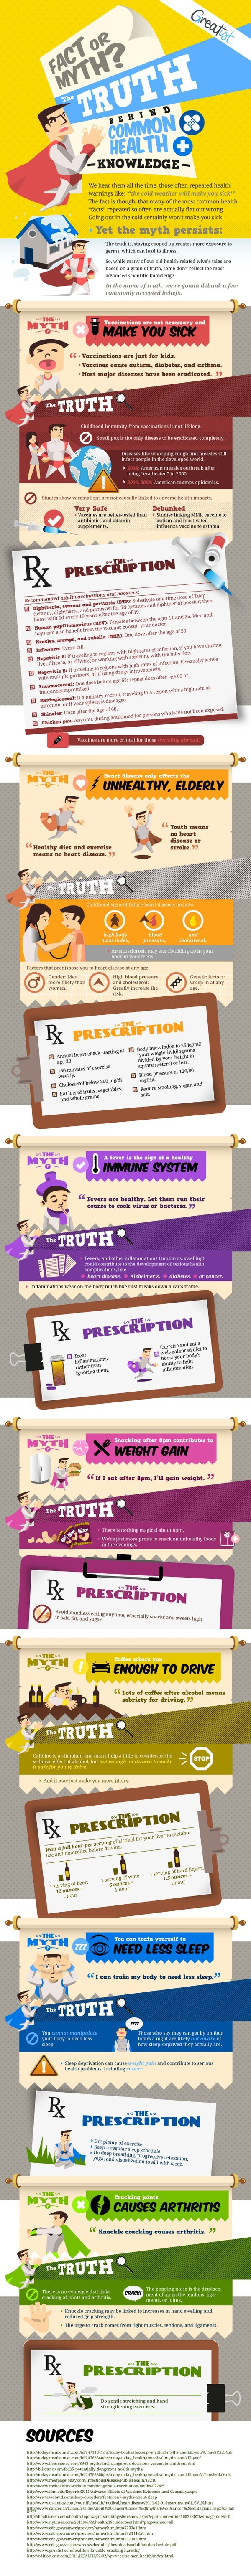 Busting Common Health Myths Infographic